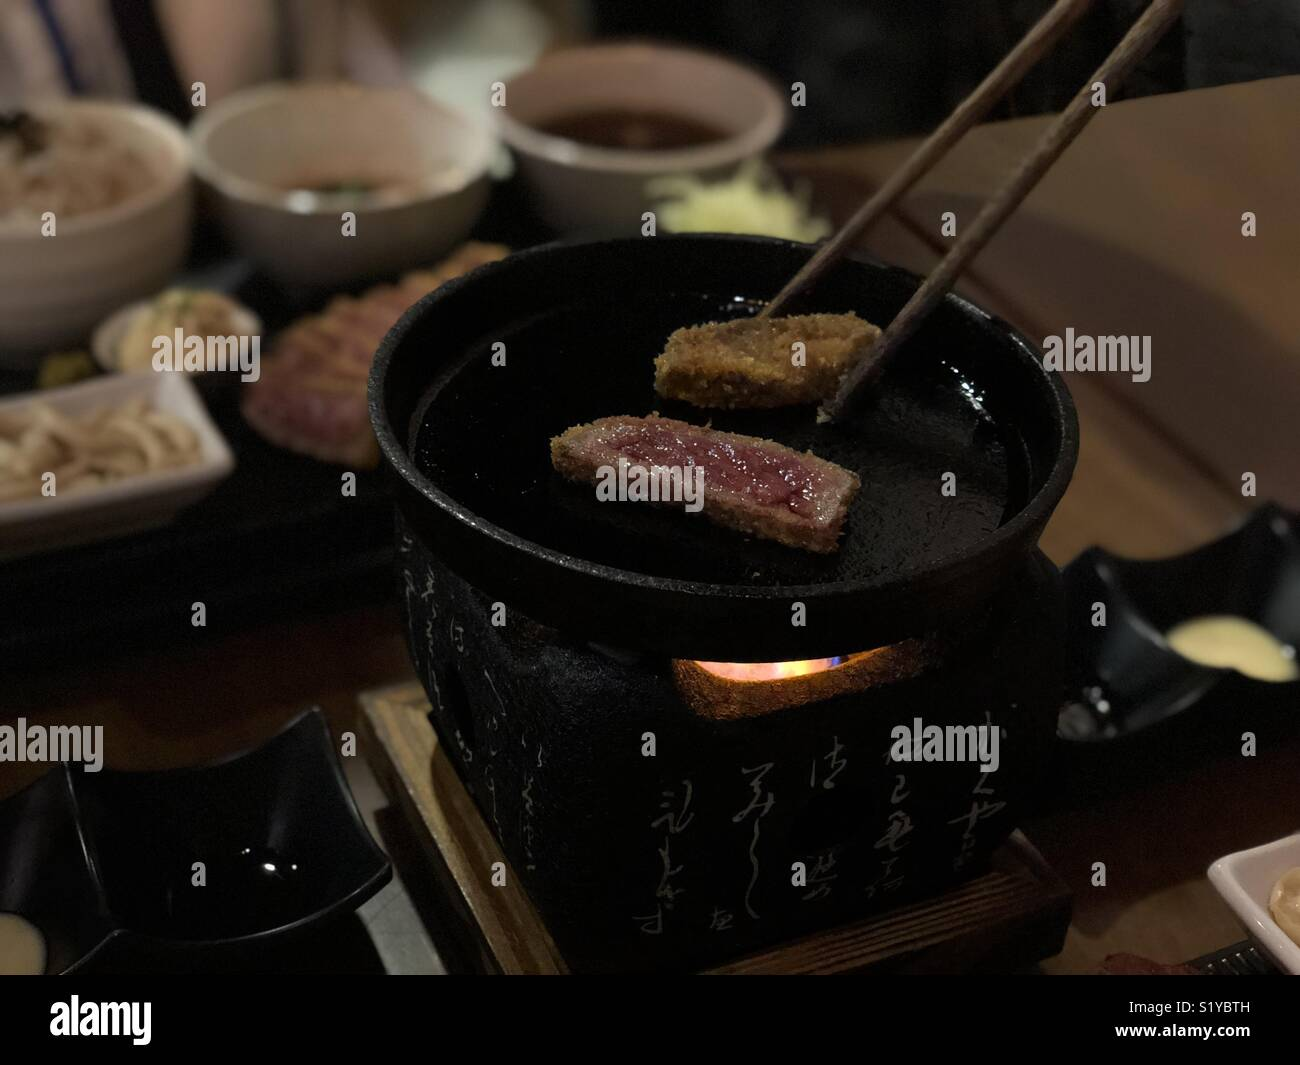 Japanese Gillette Beef - Stock Image